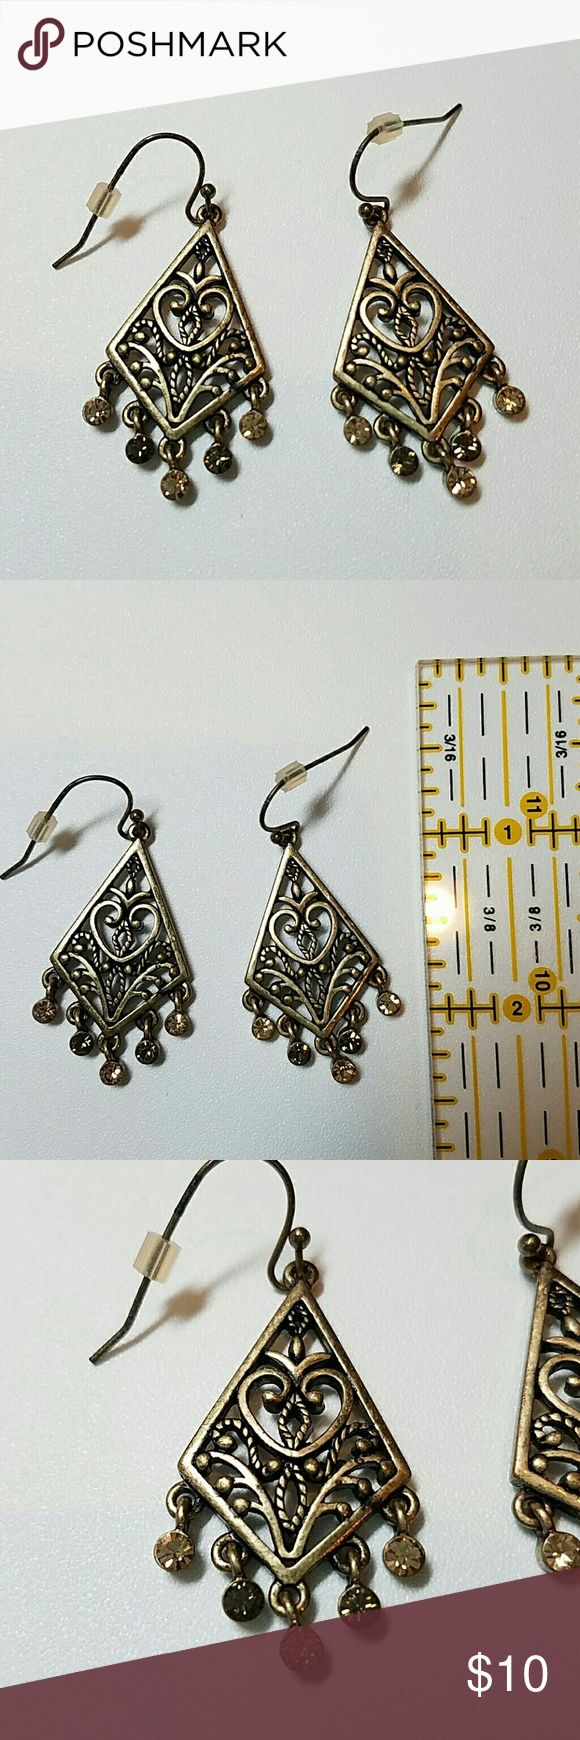 Lia Sophia earrings Gold tone. 2 colors of brown stones Lia Sophia Jewelry Earrings